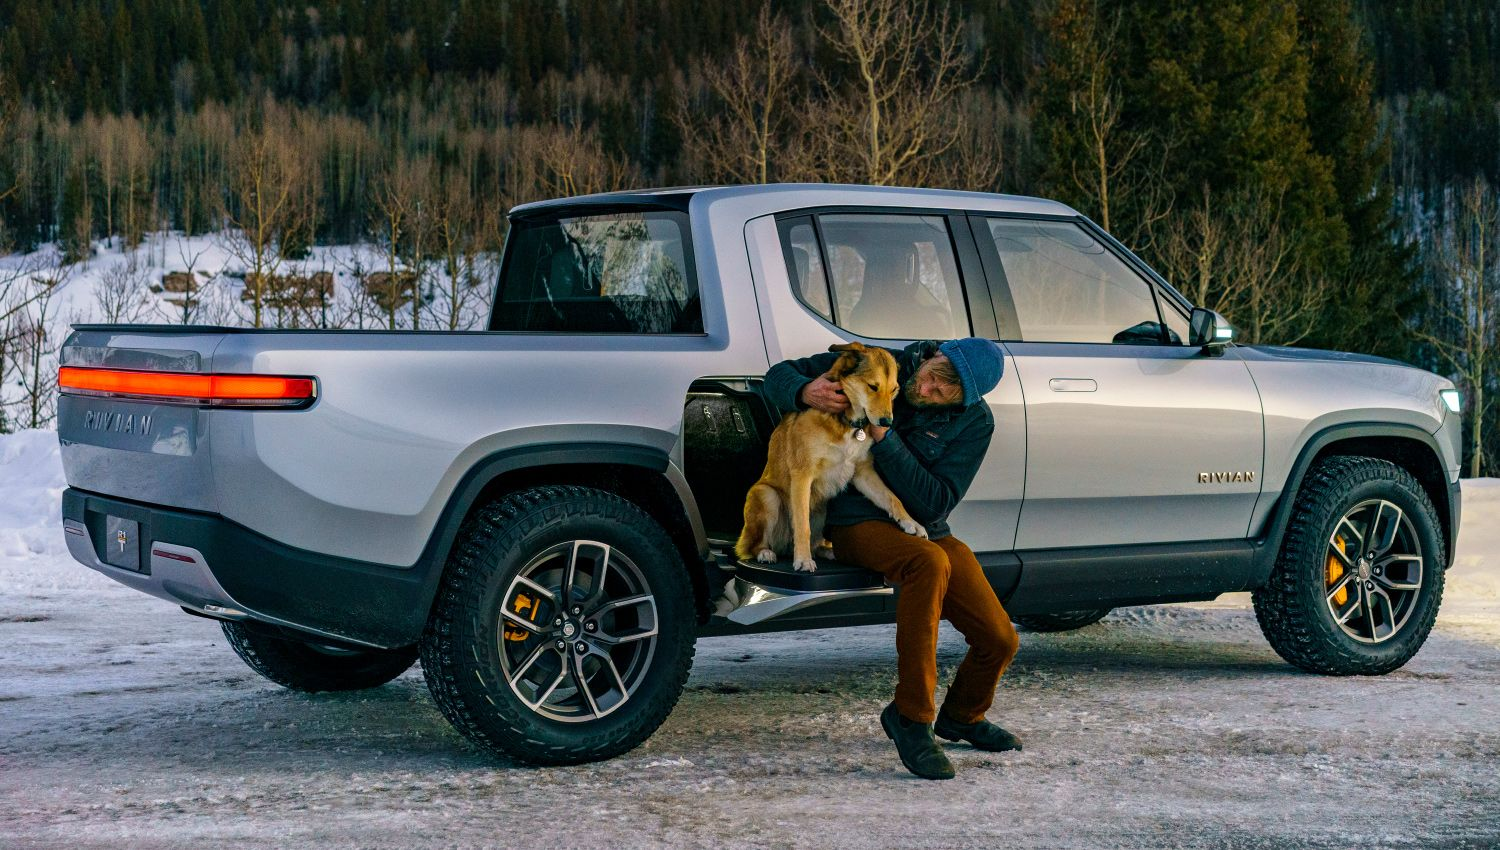 rivian r1t electric pickup truck